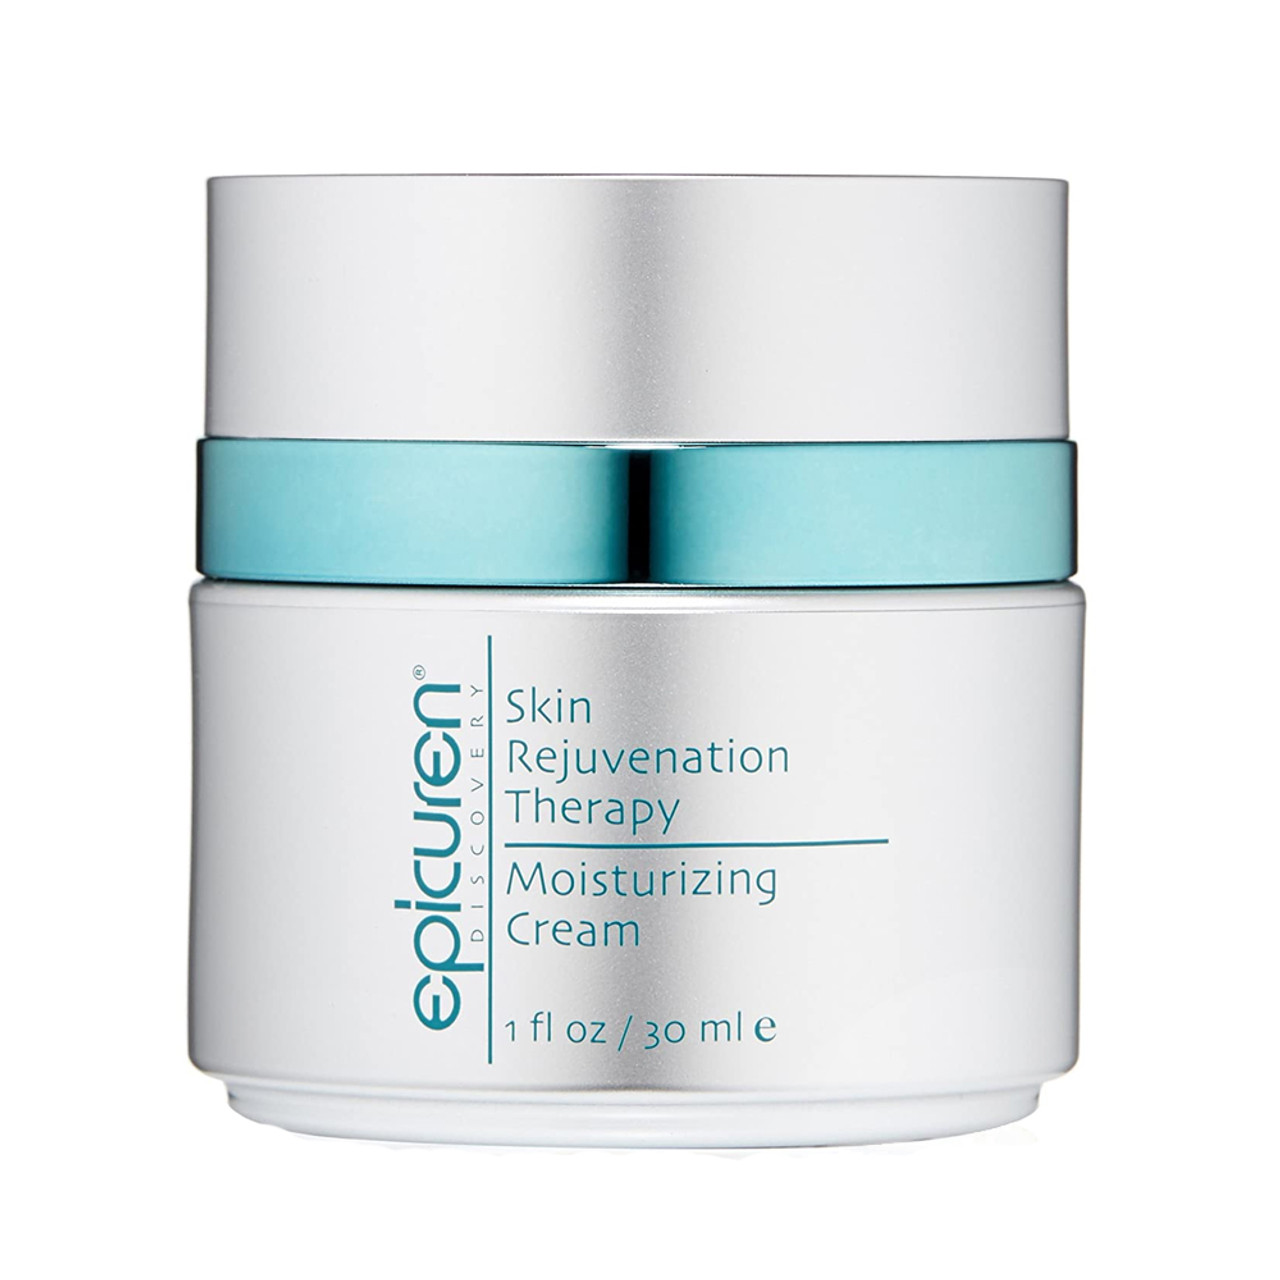 epicuren Discovery Skin Rejuvenation Therapy Moisturizing Cream